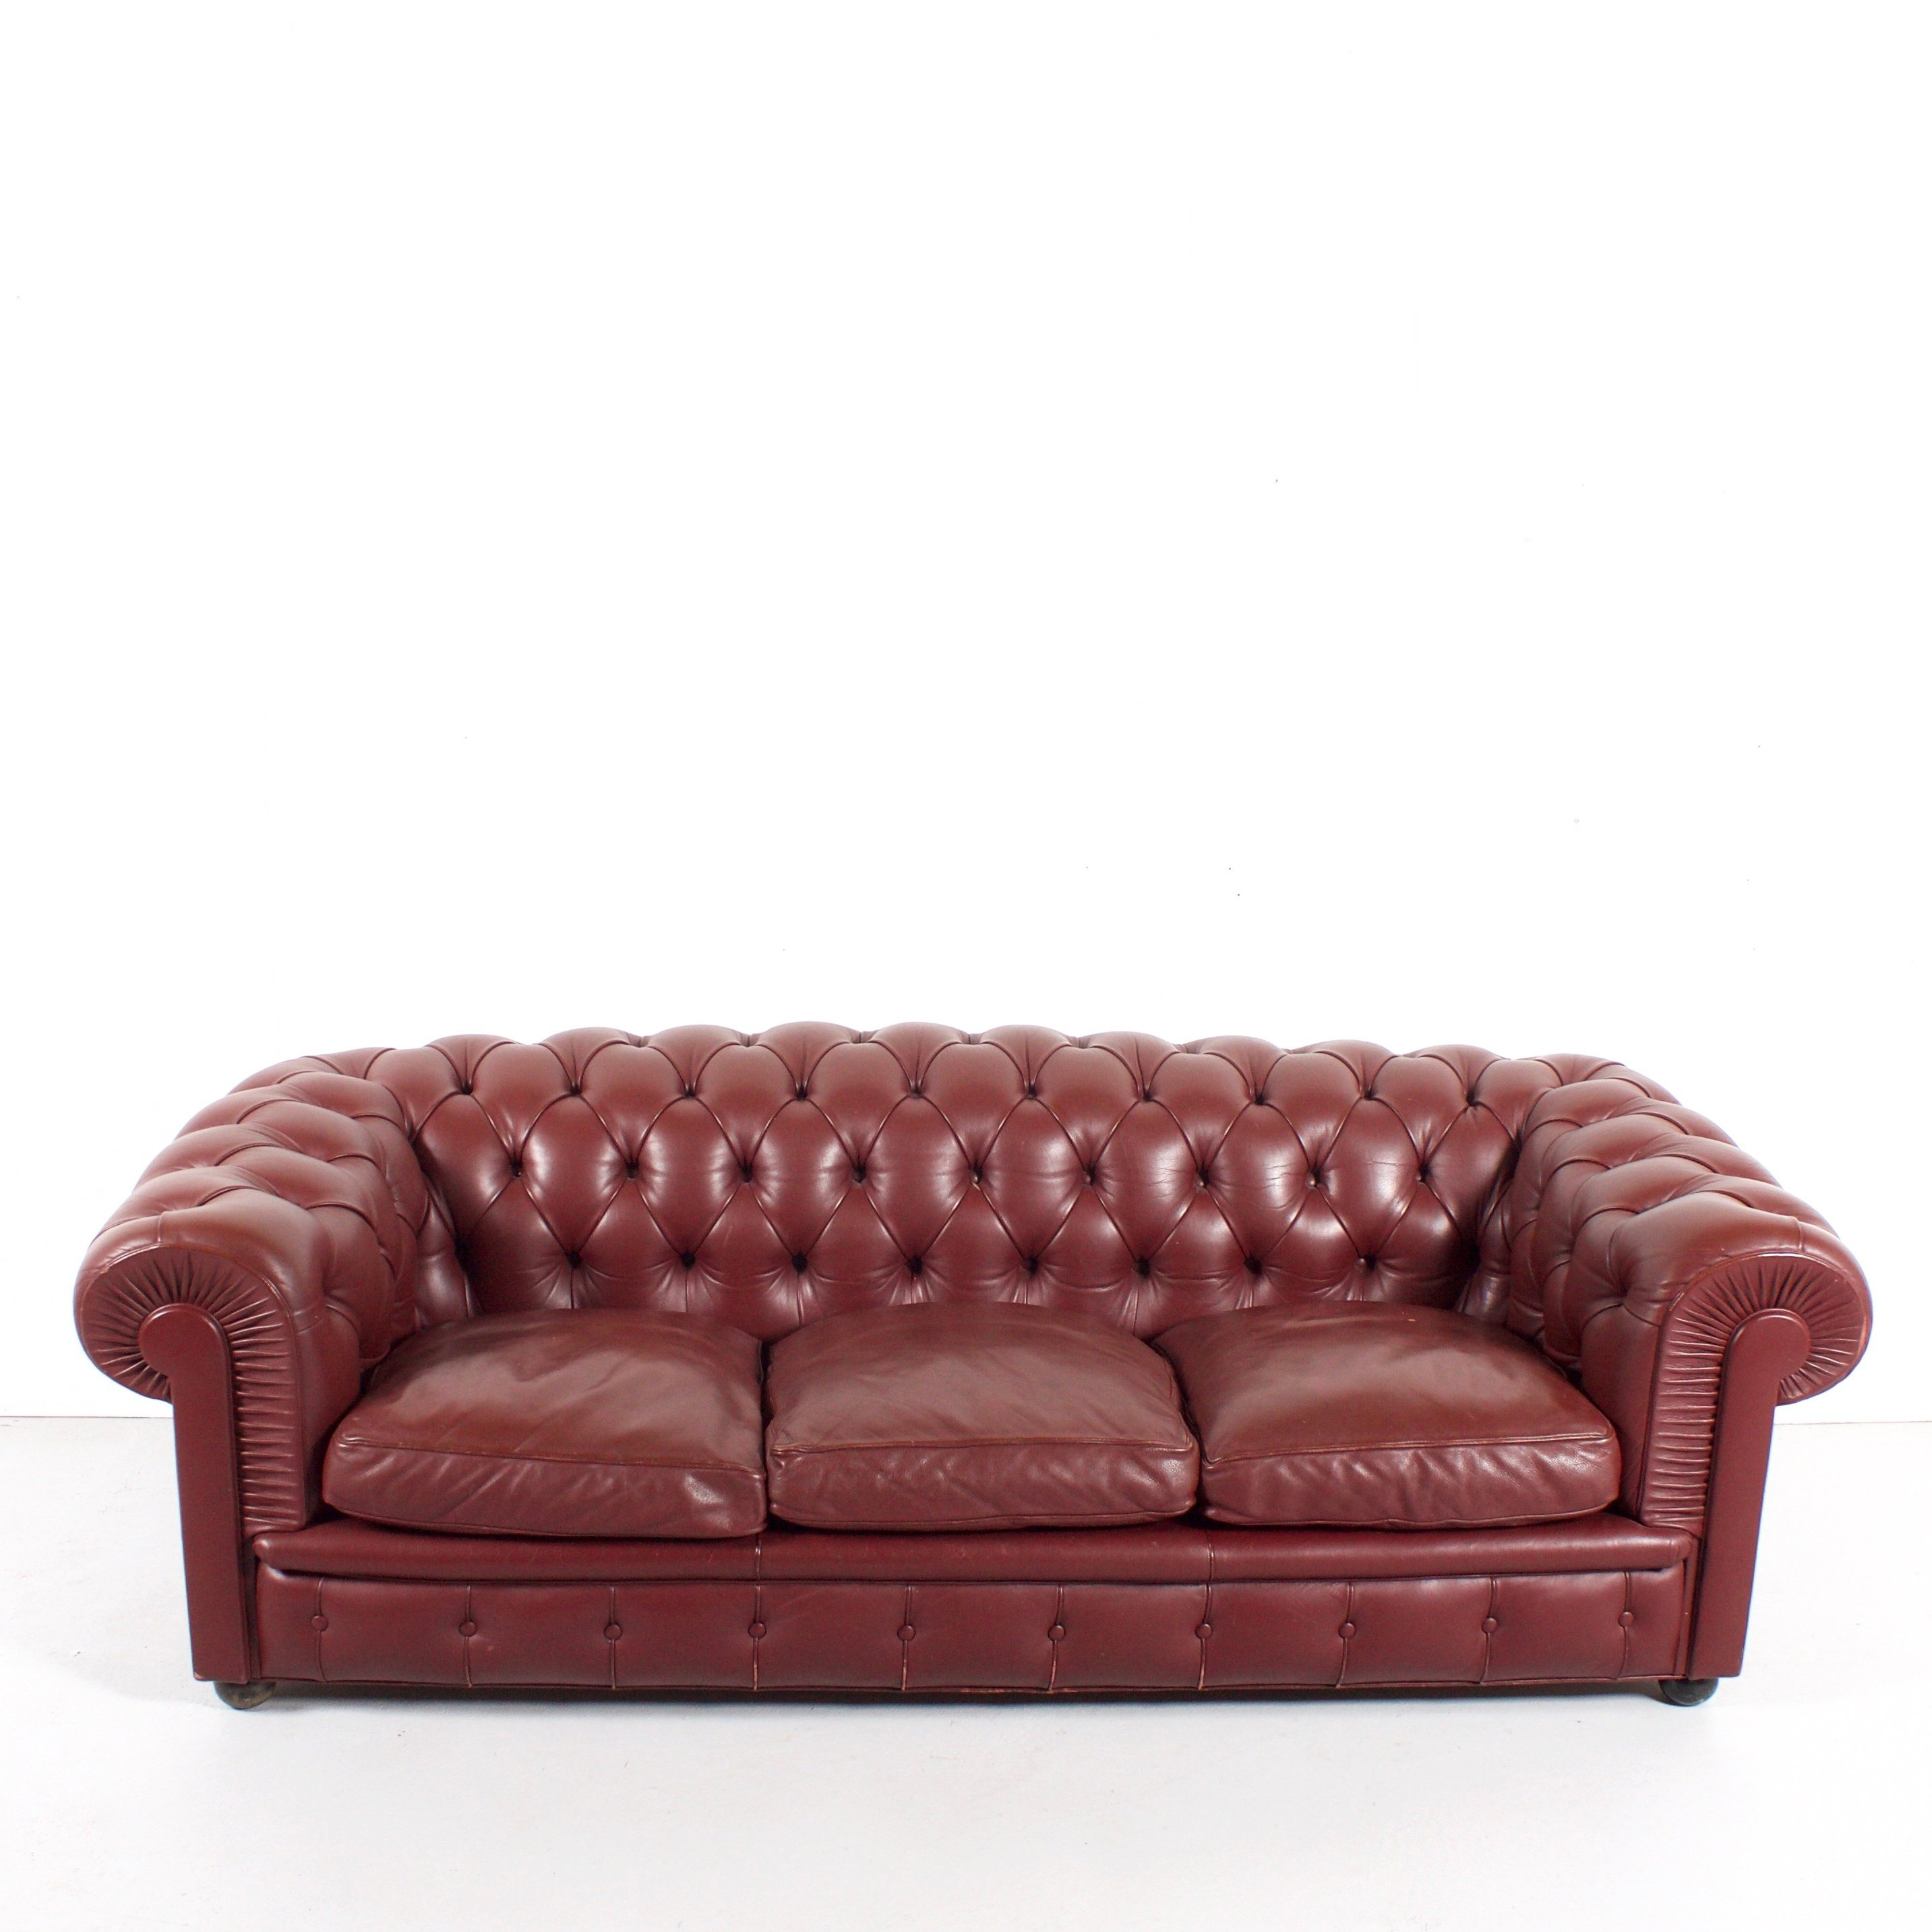 find furniture and beauty royal chesterfield vintage chair decors com with